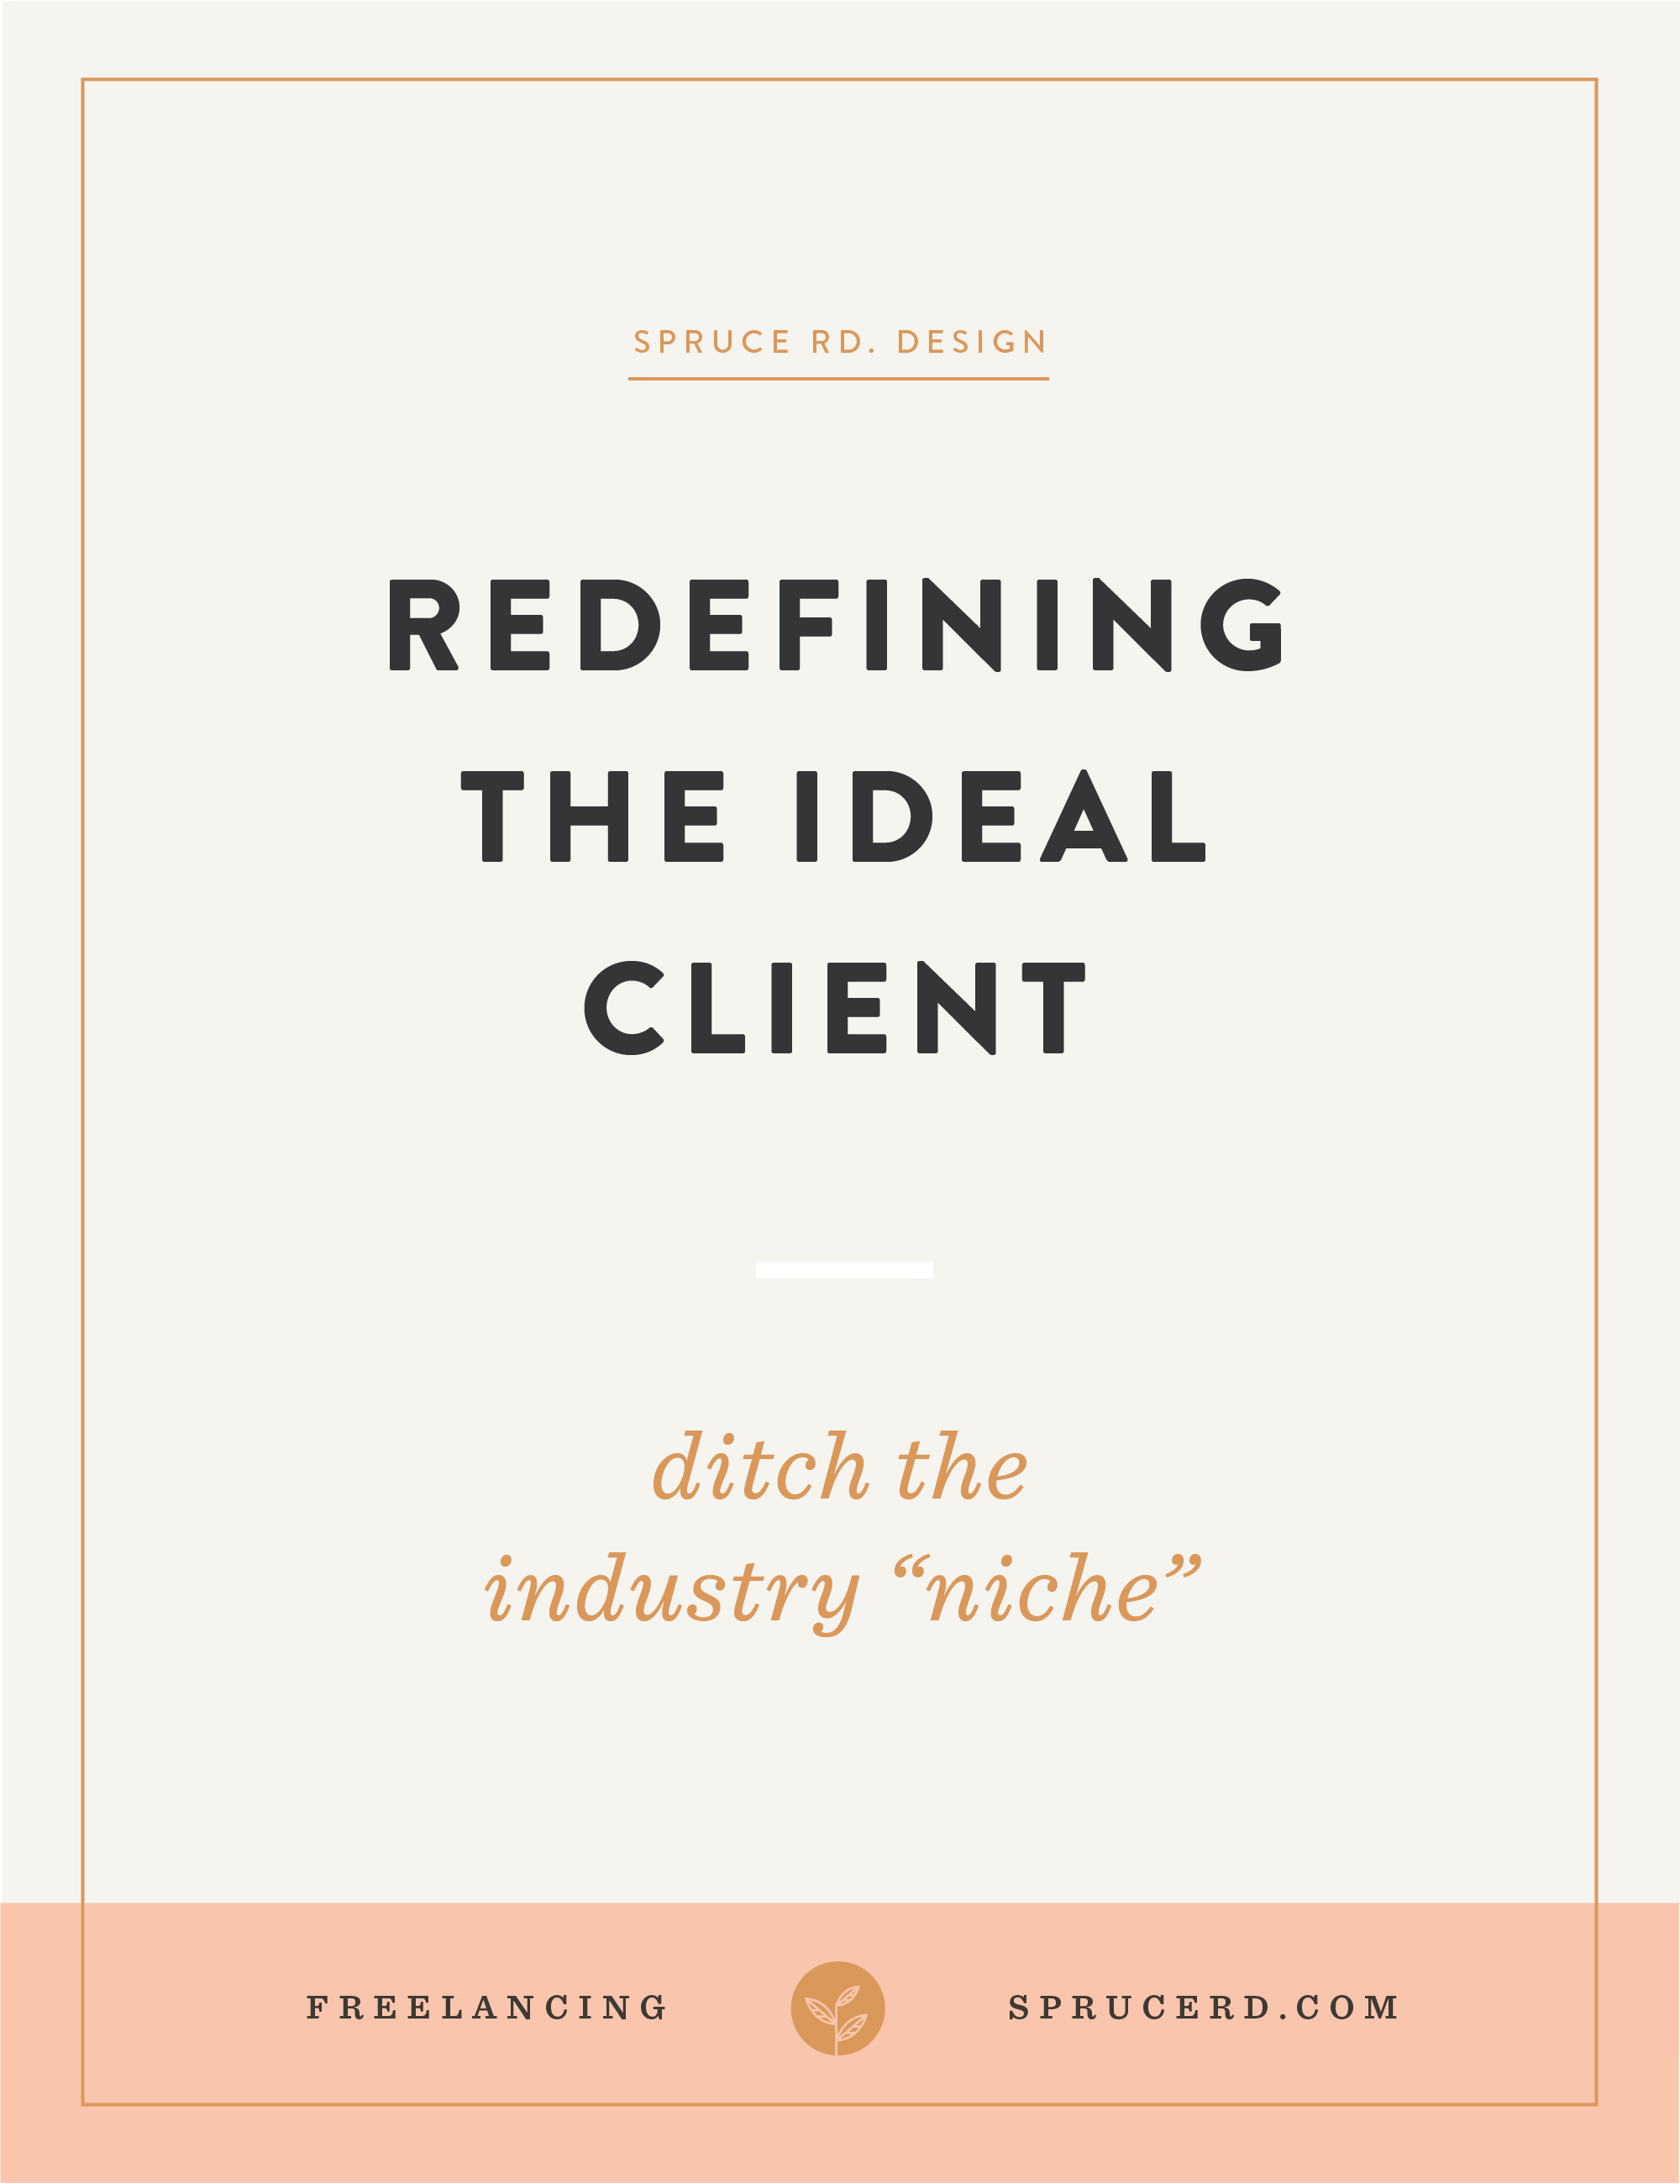 Redefining the ideal client | Spruce Rd. | Defining your ideal client can definitely seem overwhelming. How can I restrict myself to only serving one industry? Where should I focus my efforts? Rather than focusing on one industry, I'm sharing how I've redefined my ideal client.